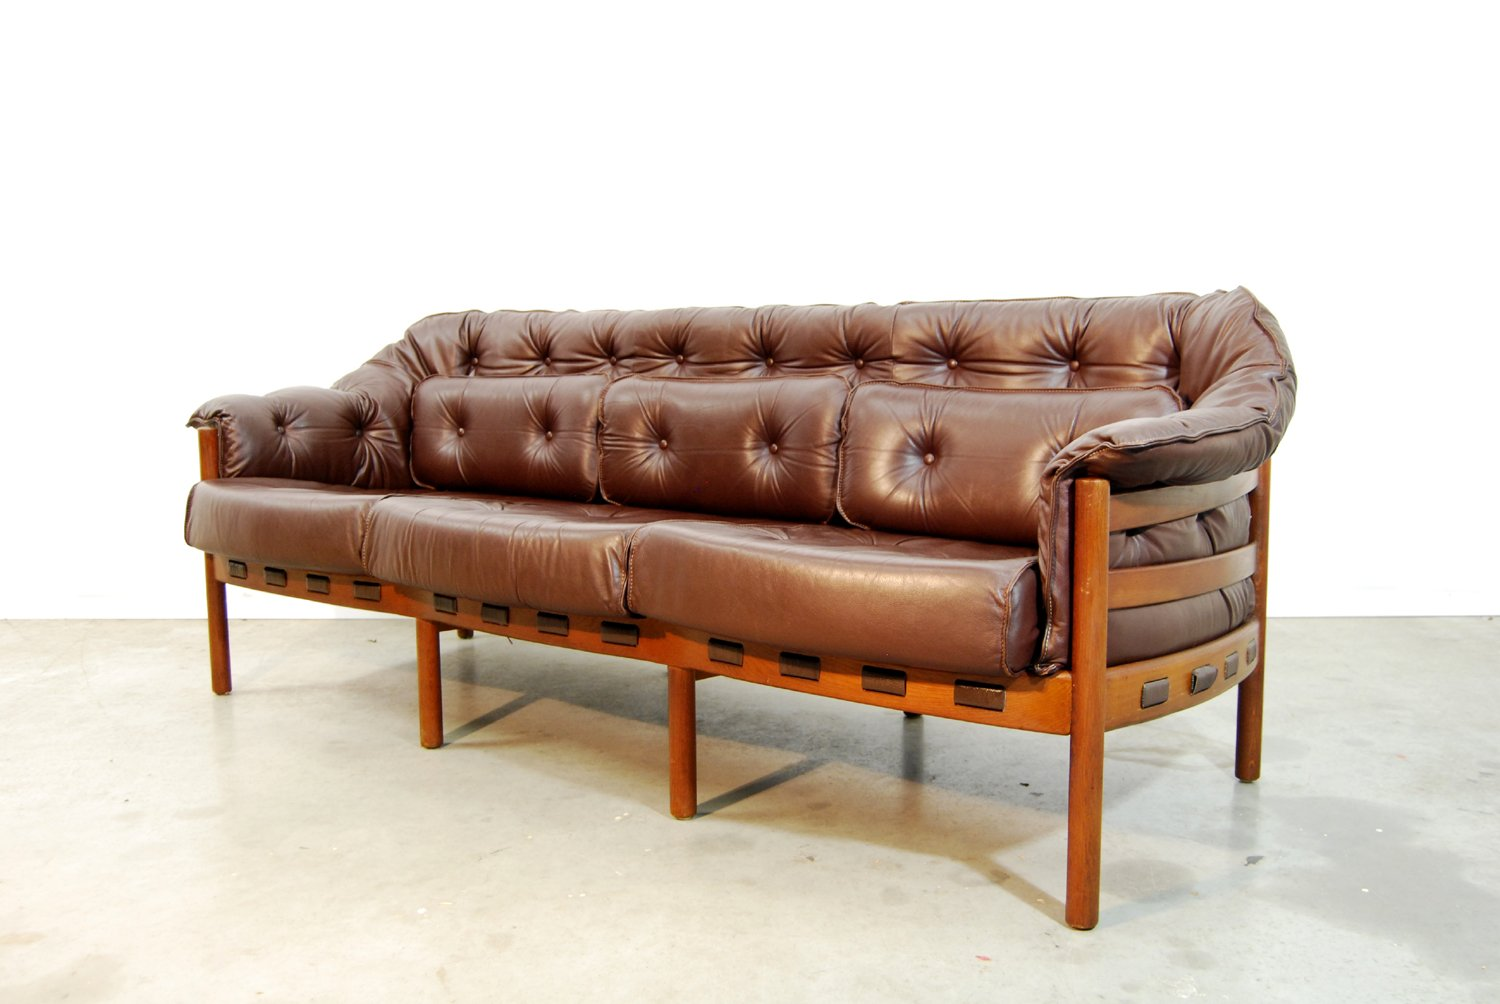 Mid century swedish sofa by arne norell for coja 1960s for Swedish sofa